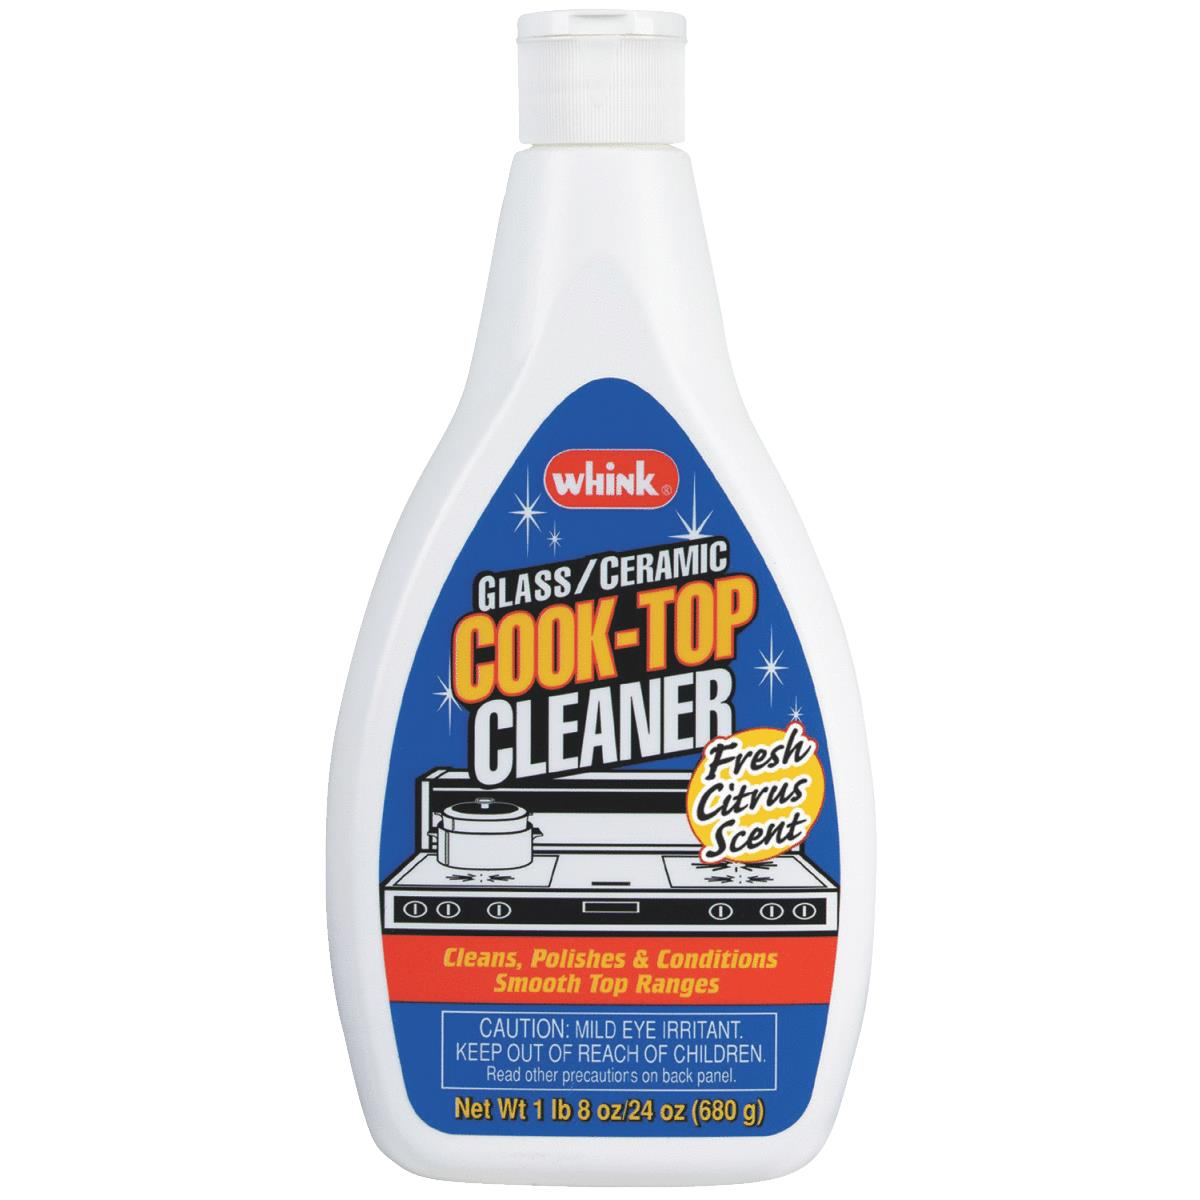 Glass and Ceramic Cook-Top Cleaner